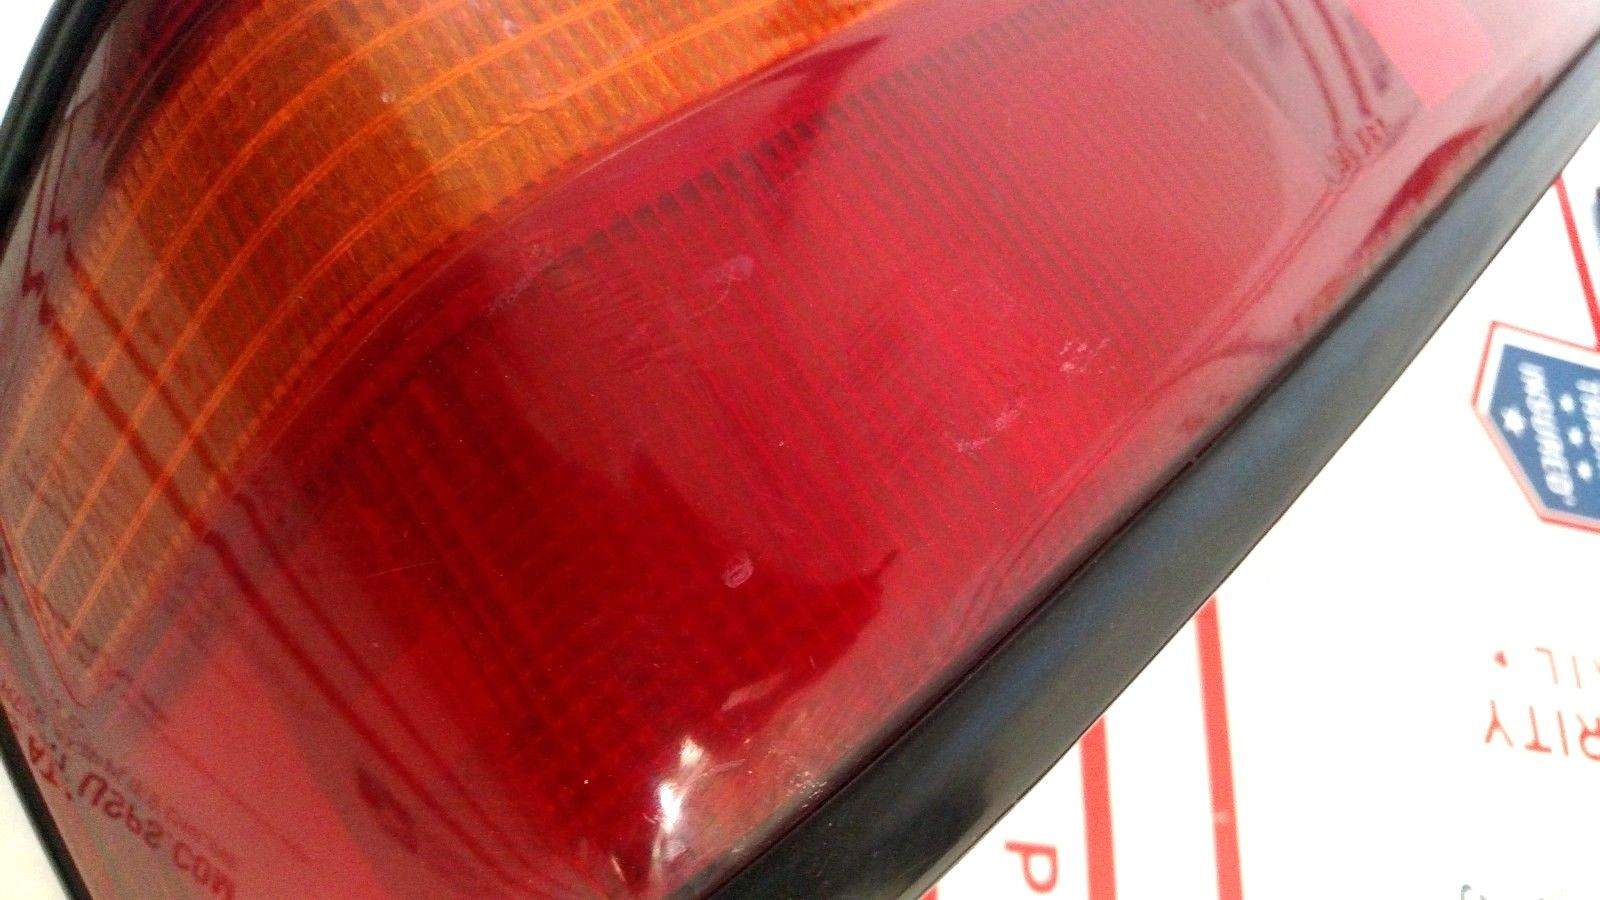 90-91 Honda Civic 4-door Sedan 3 Piece Rear Tail Light Set OEM EF Garnish LH RH Does not apply